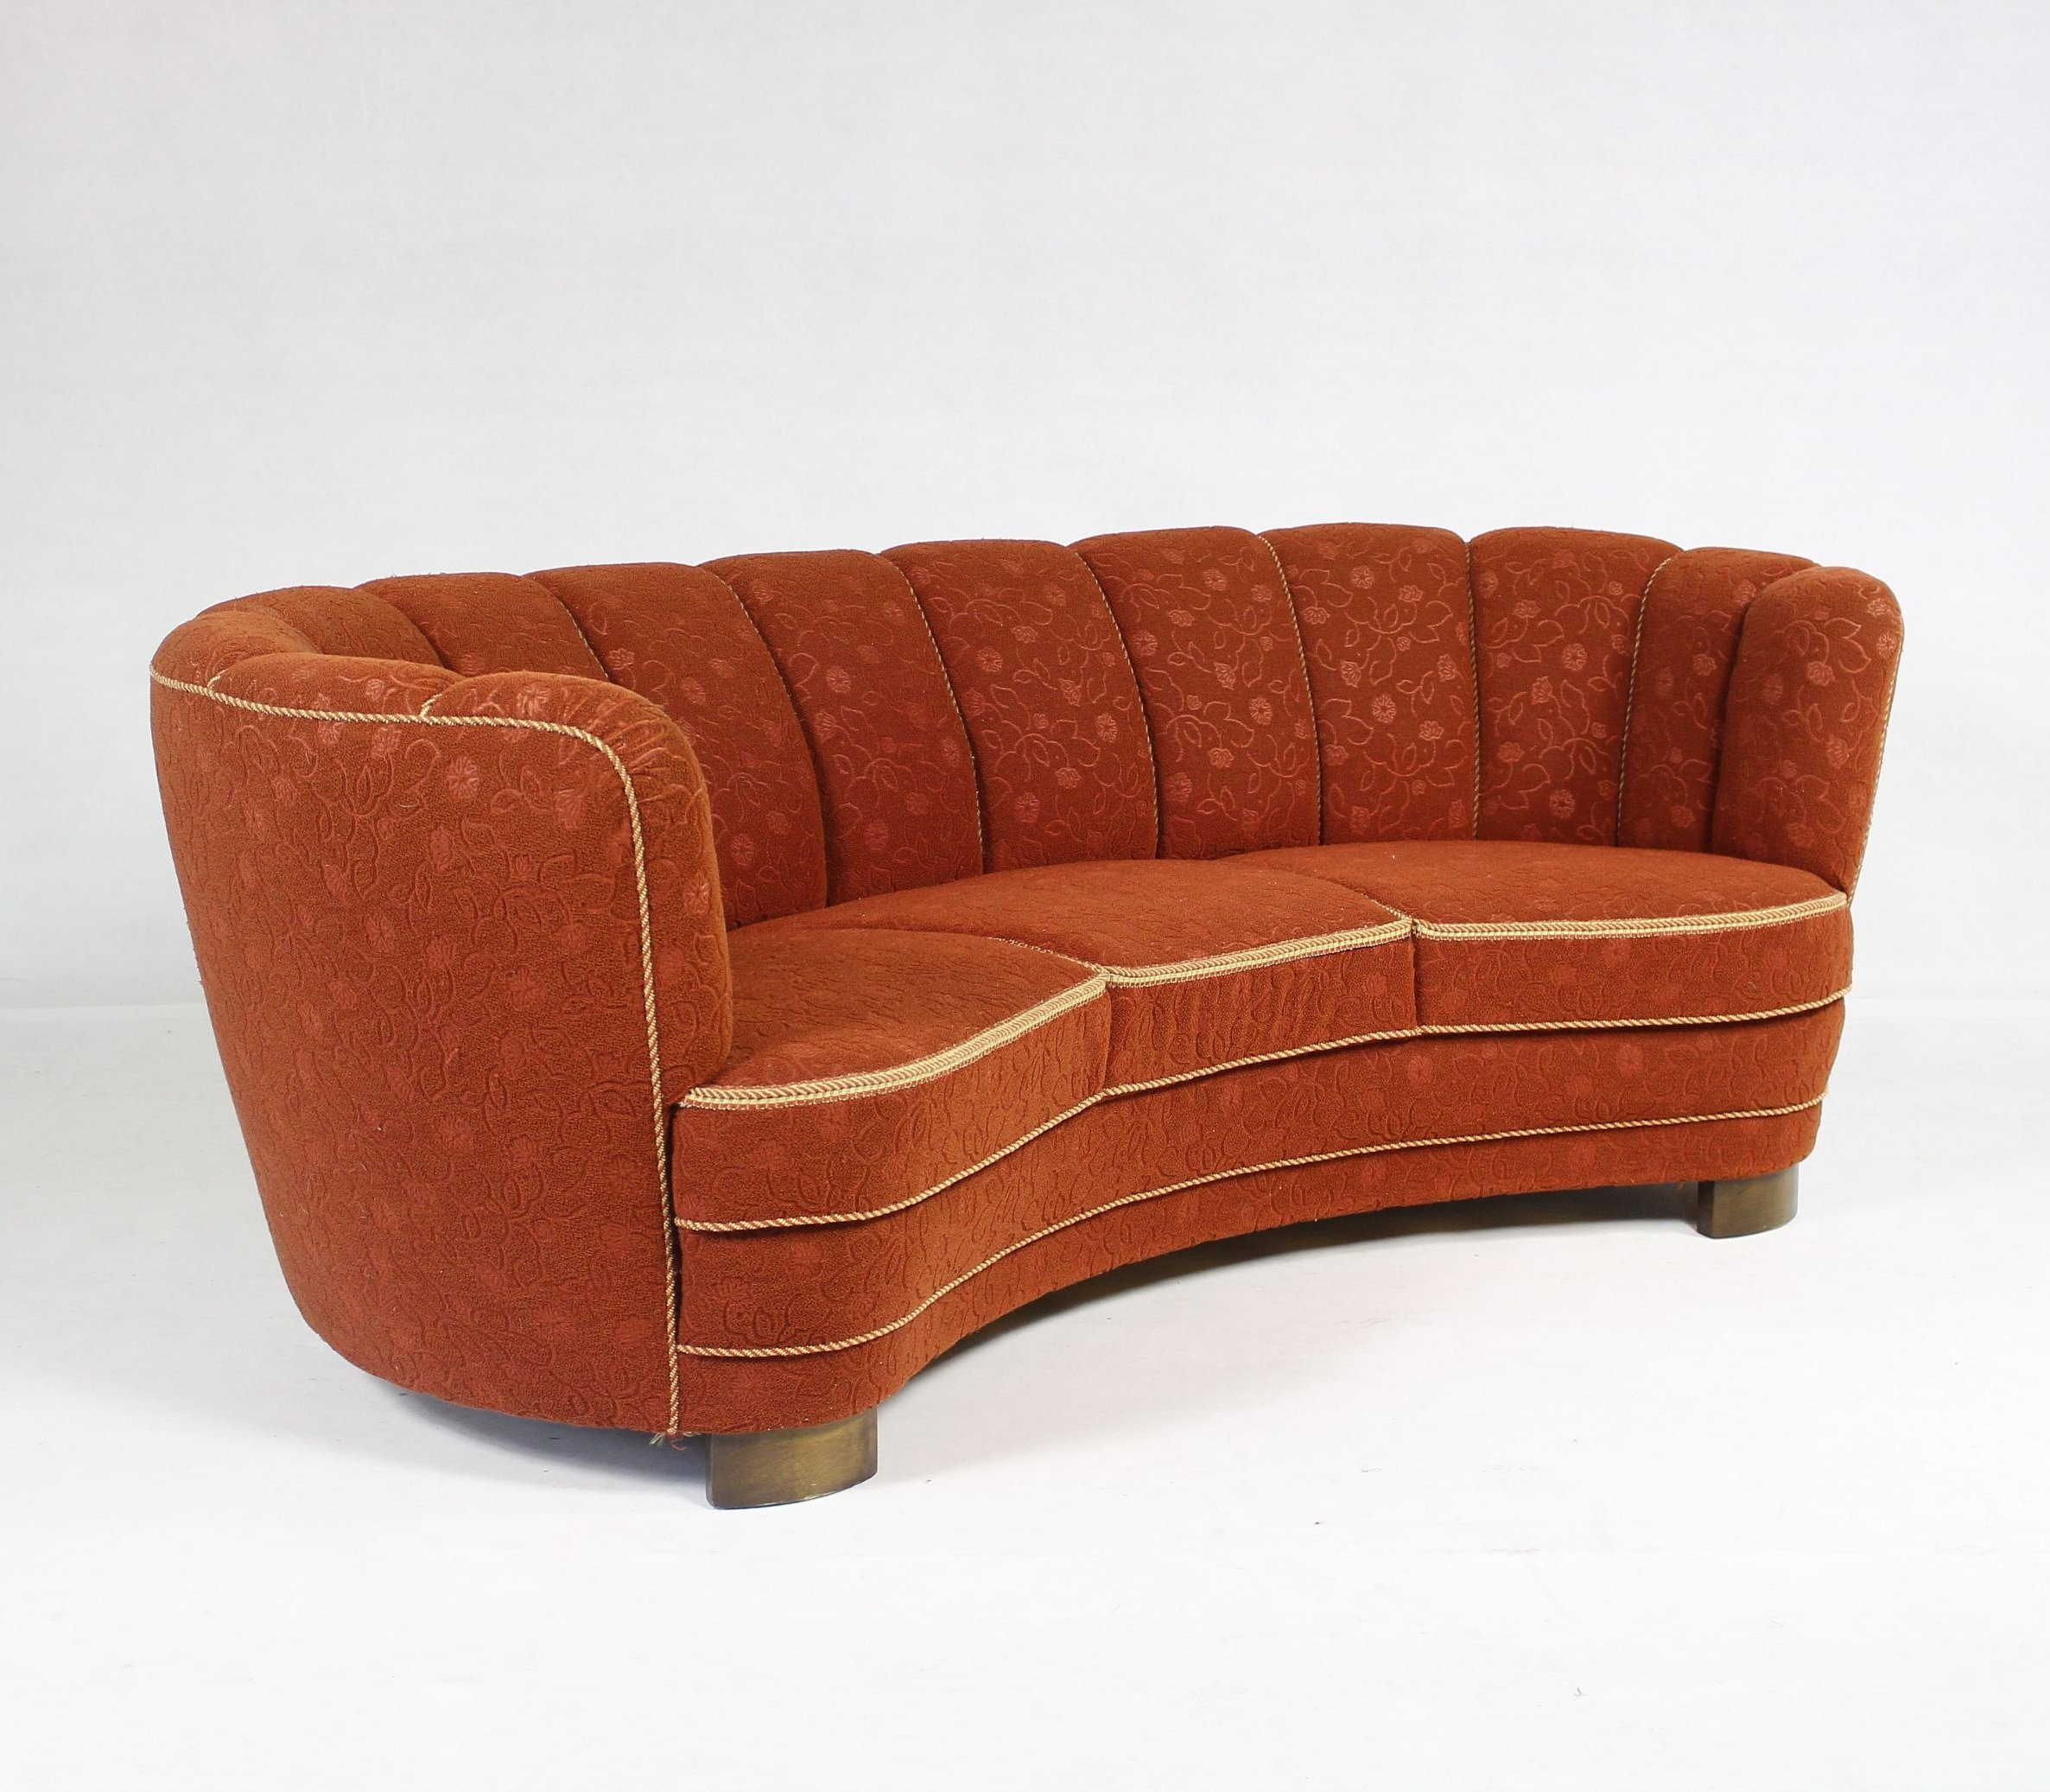 Vintage Art Deco Curved Sofa 1940s 72944